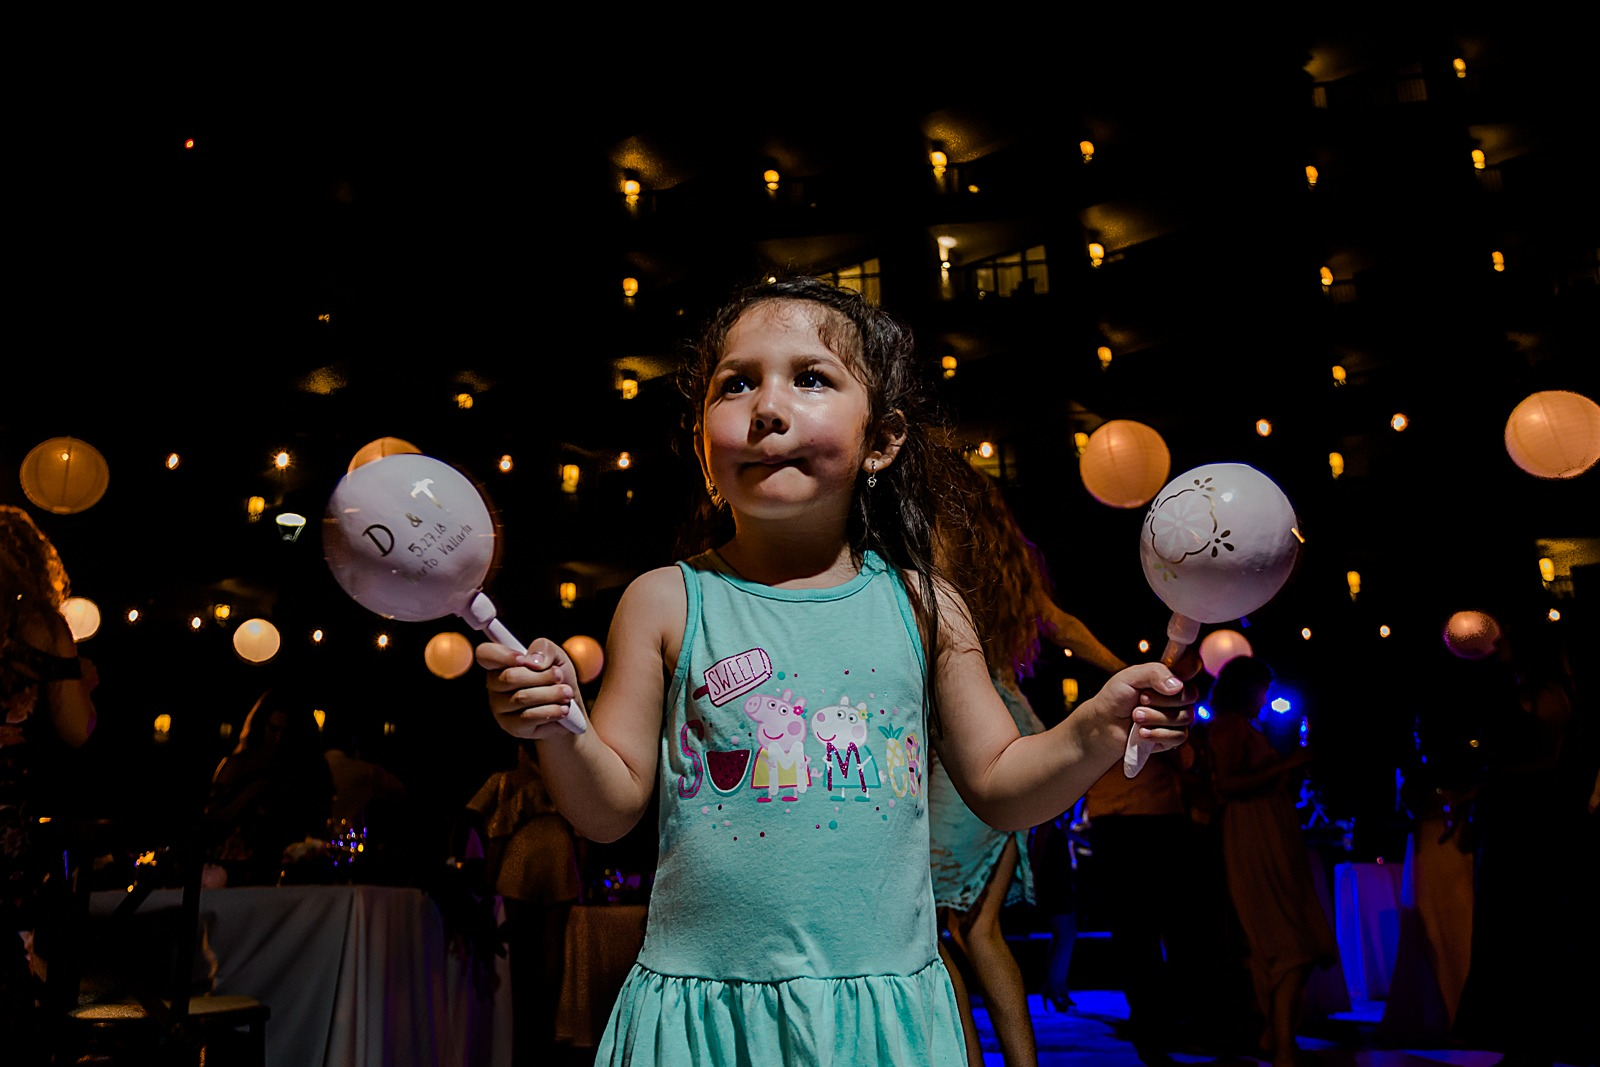 wedding-party-kids-maracas-fun-moment-vallarta